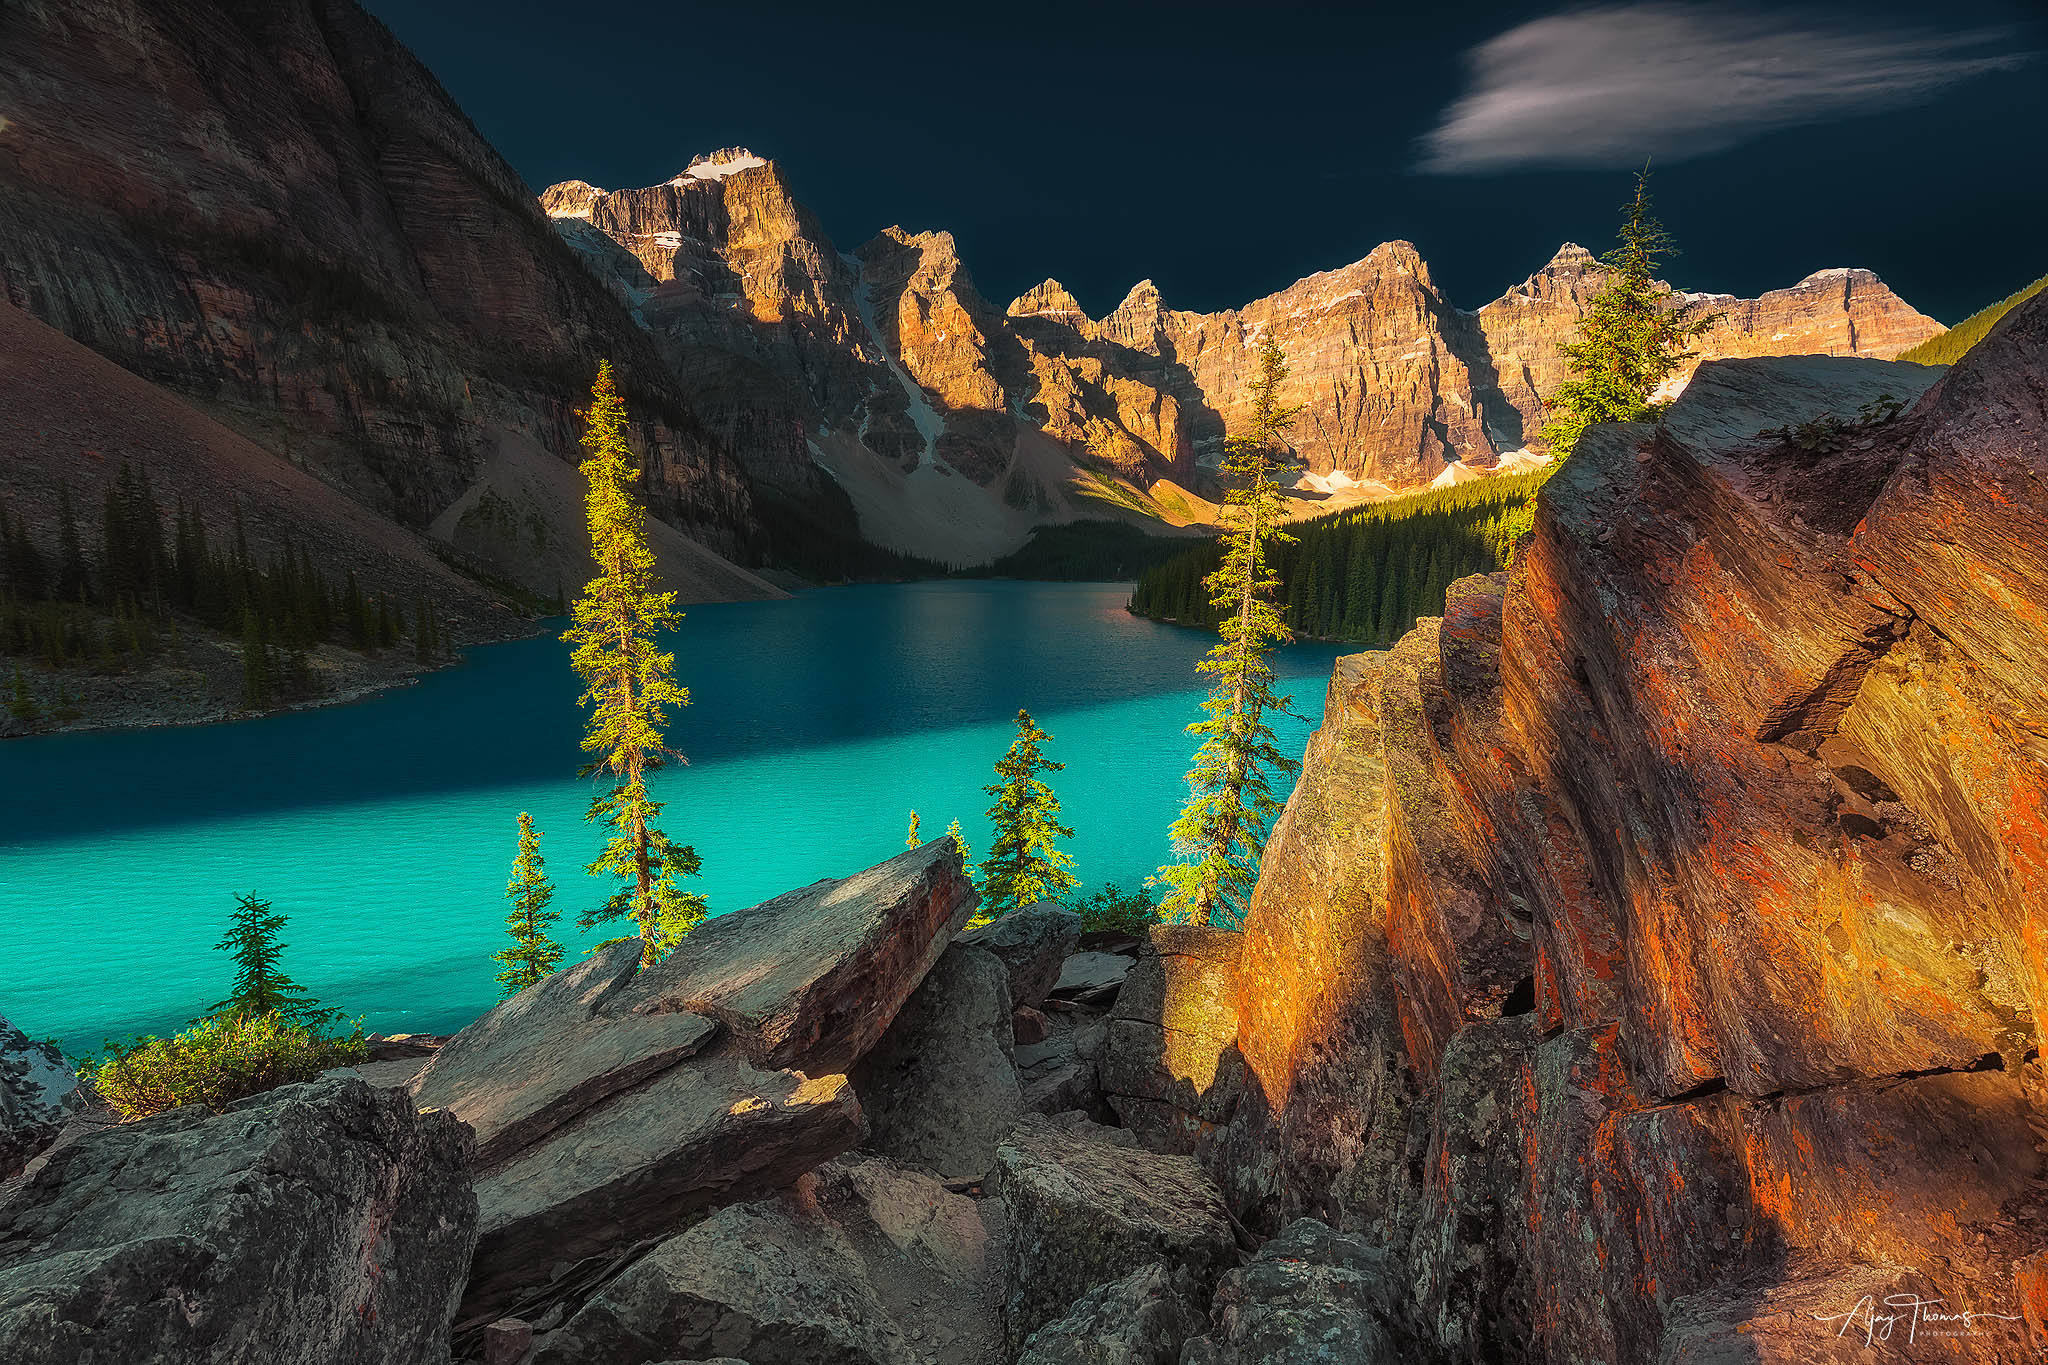 Banff National park, Jasper National park, Alberta, Icefields parkway, Columbia icefields, Moraine Lake, Lake Louise, Fine art limited edition prints, Calgary, Mountain Photography, Canadian Rockies,, photo